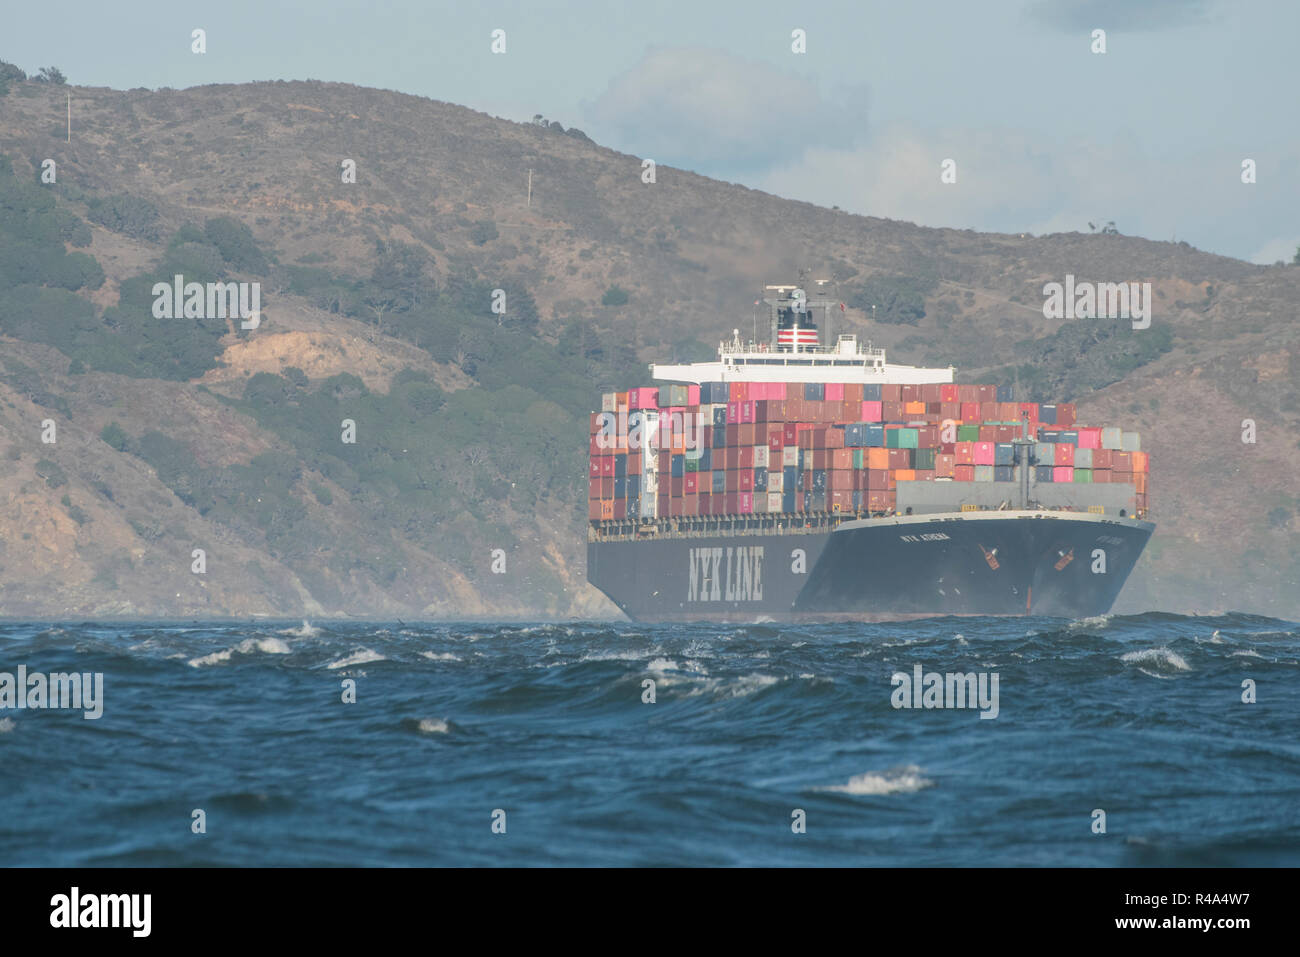 A cargo ship fully loaded with shipping containers traverses the San Francisco Bay. Stock Photo